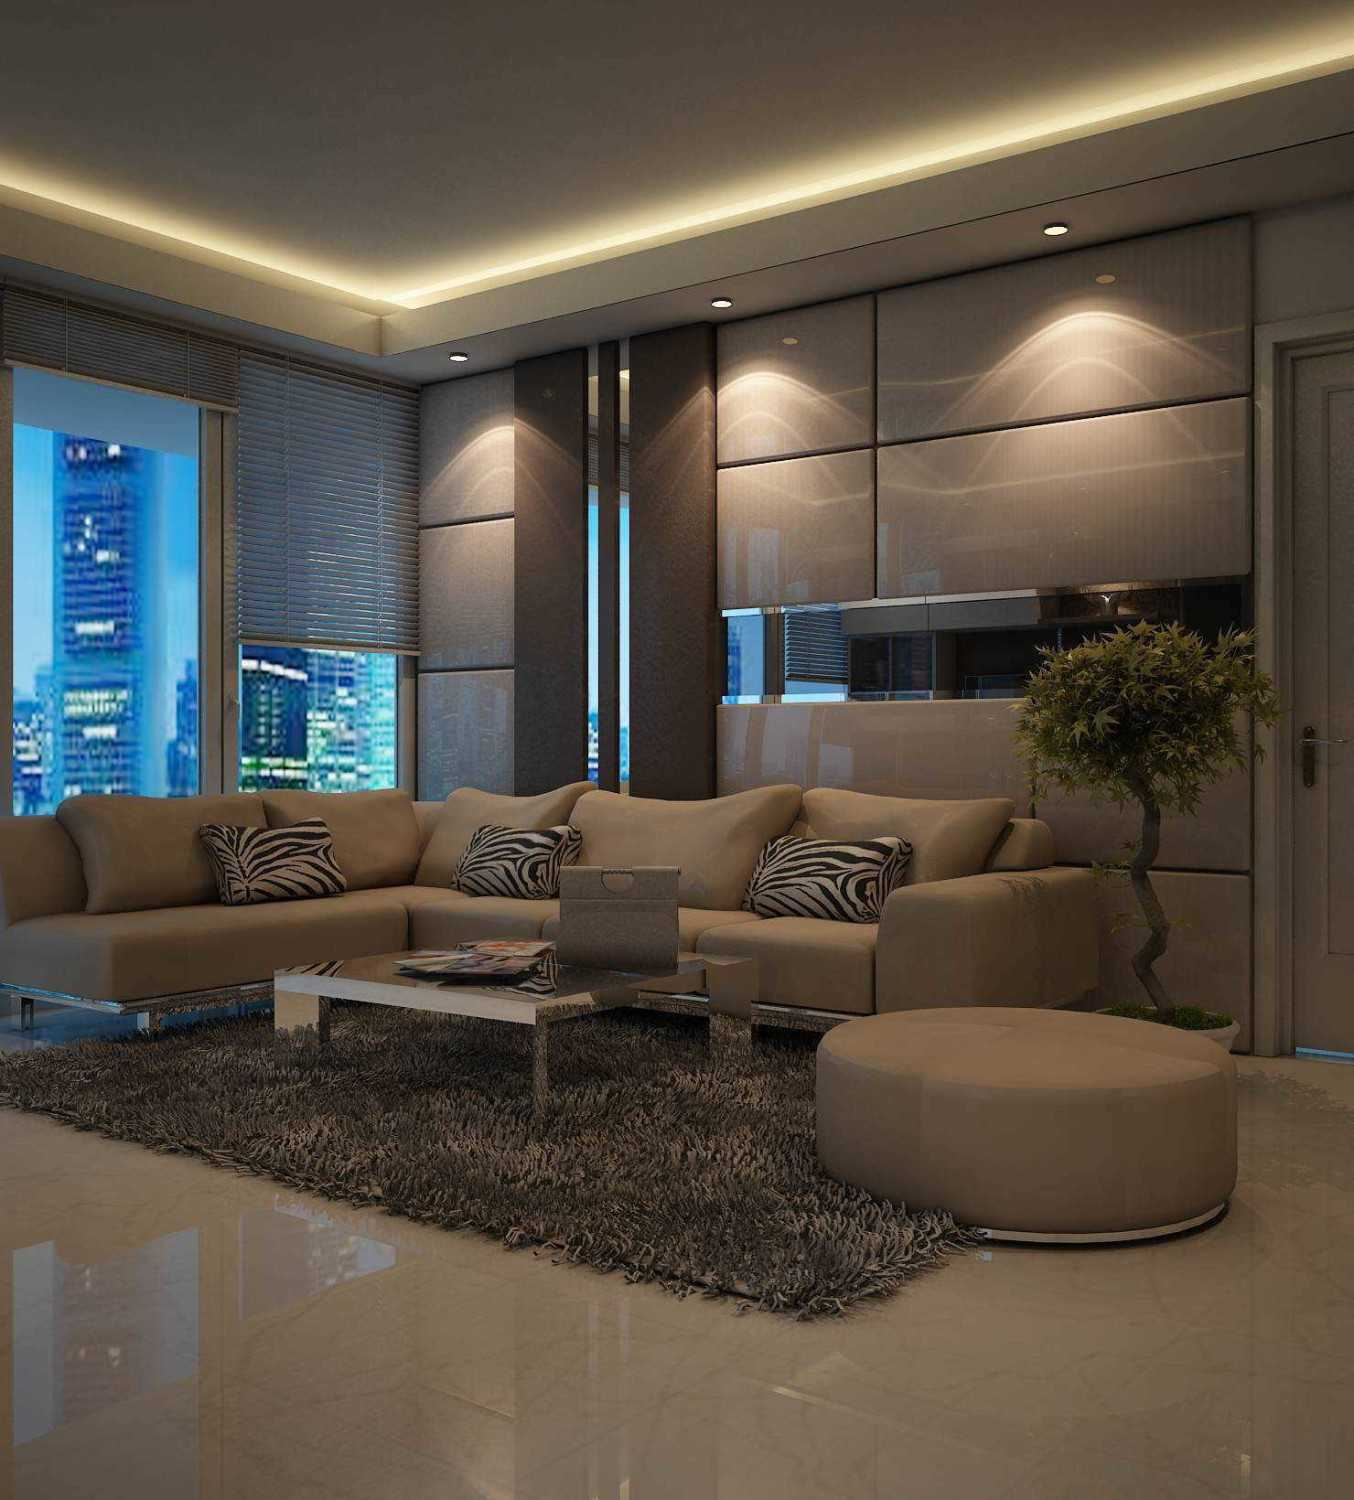 Expo Tje. Aa.aa.bsc.ba.ma The Suitroom With Office Function Apartment Jakarta, Indonesia Green Hill Suitroom Apartment Urbanism Living Room Modern 26536